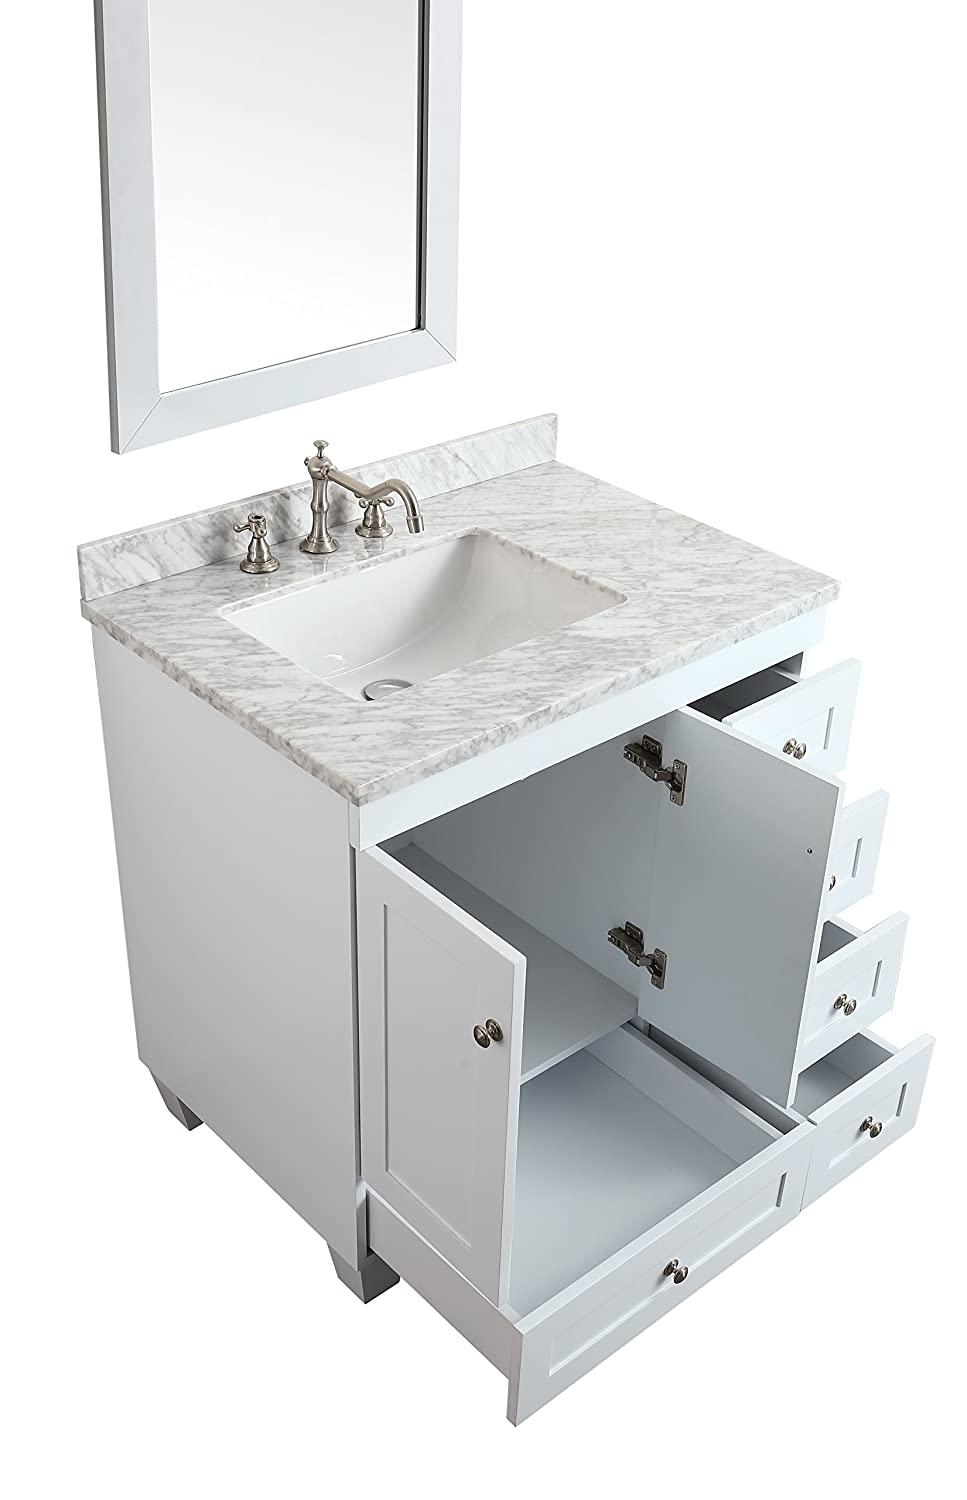 1000 ideas about 30 inch vanity on pinterest 30 inch - 30 inch white bathroom vanity with sink ...